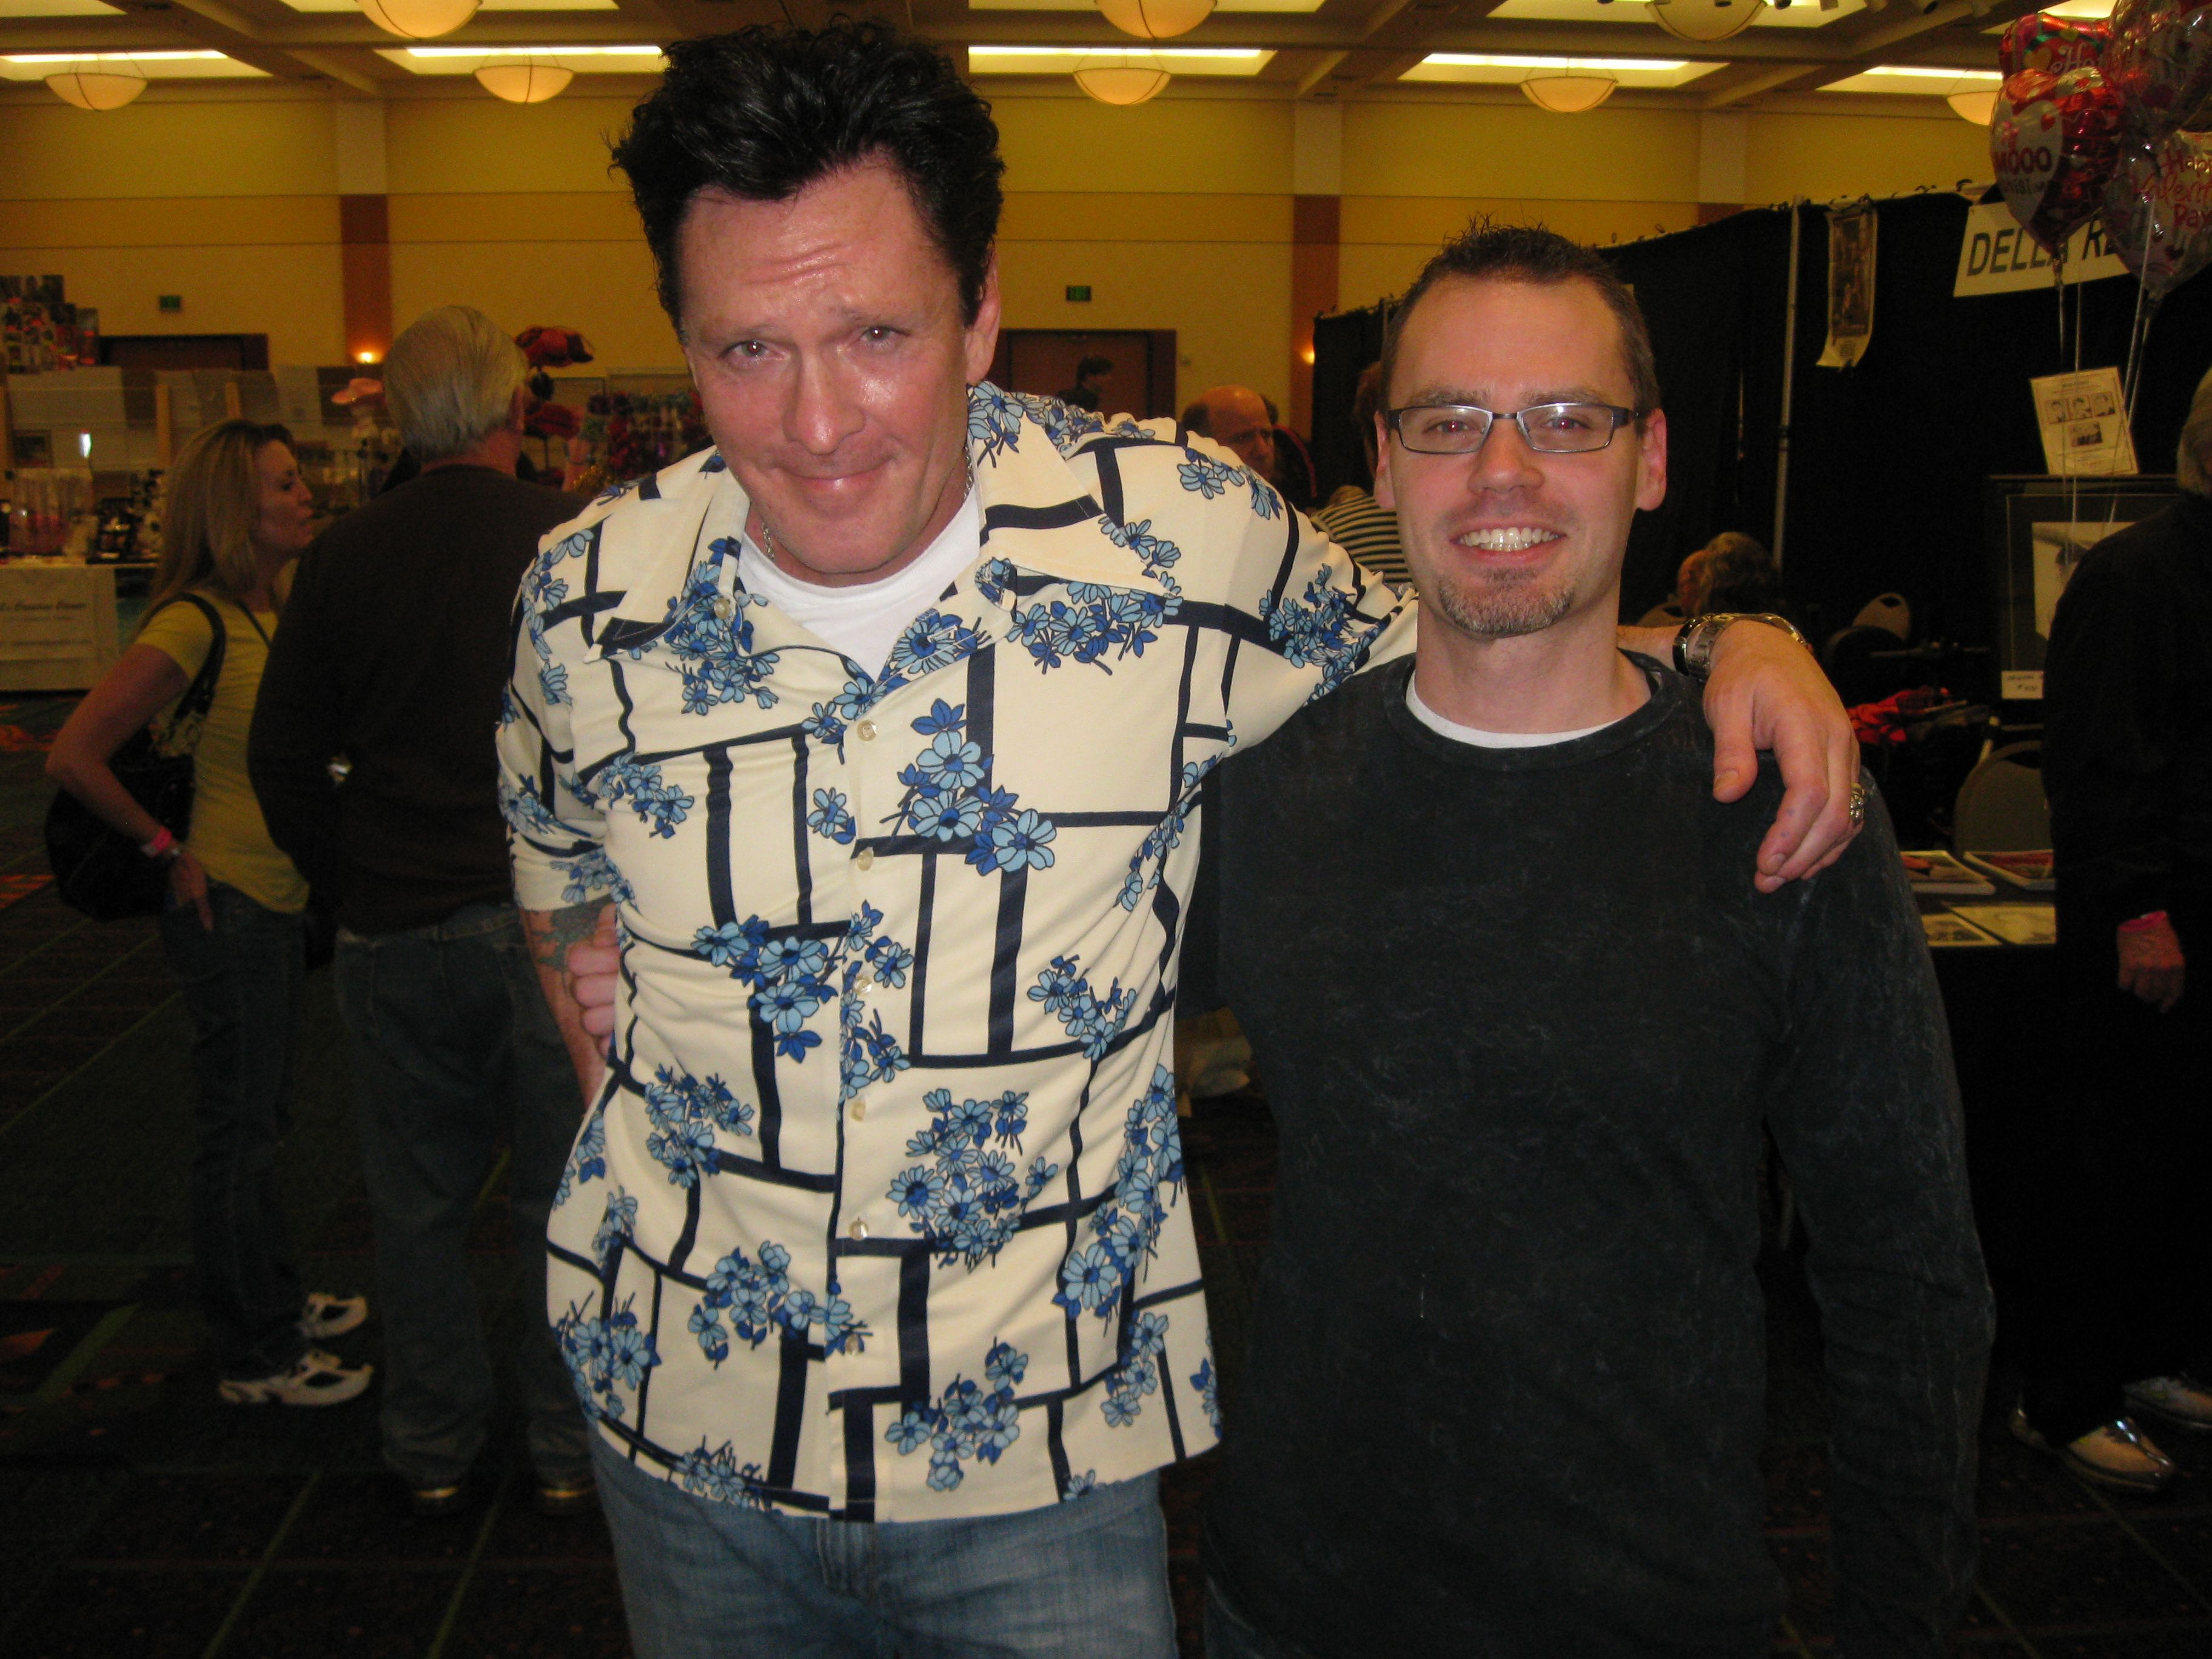 Me and Michael Madsen